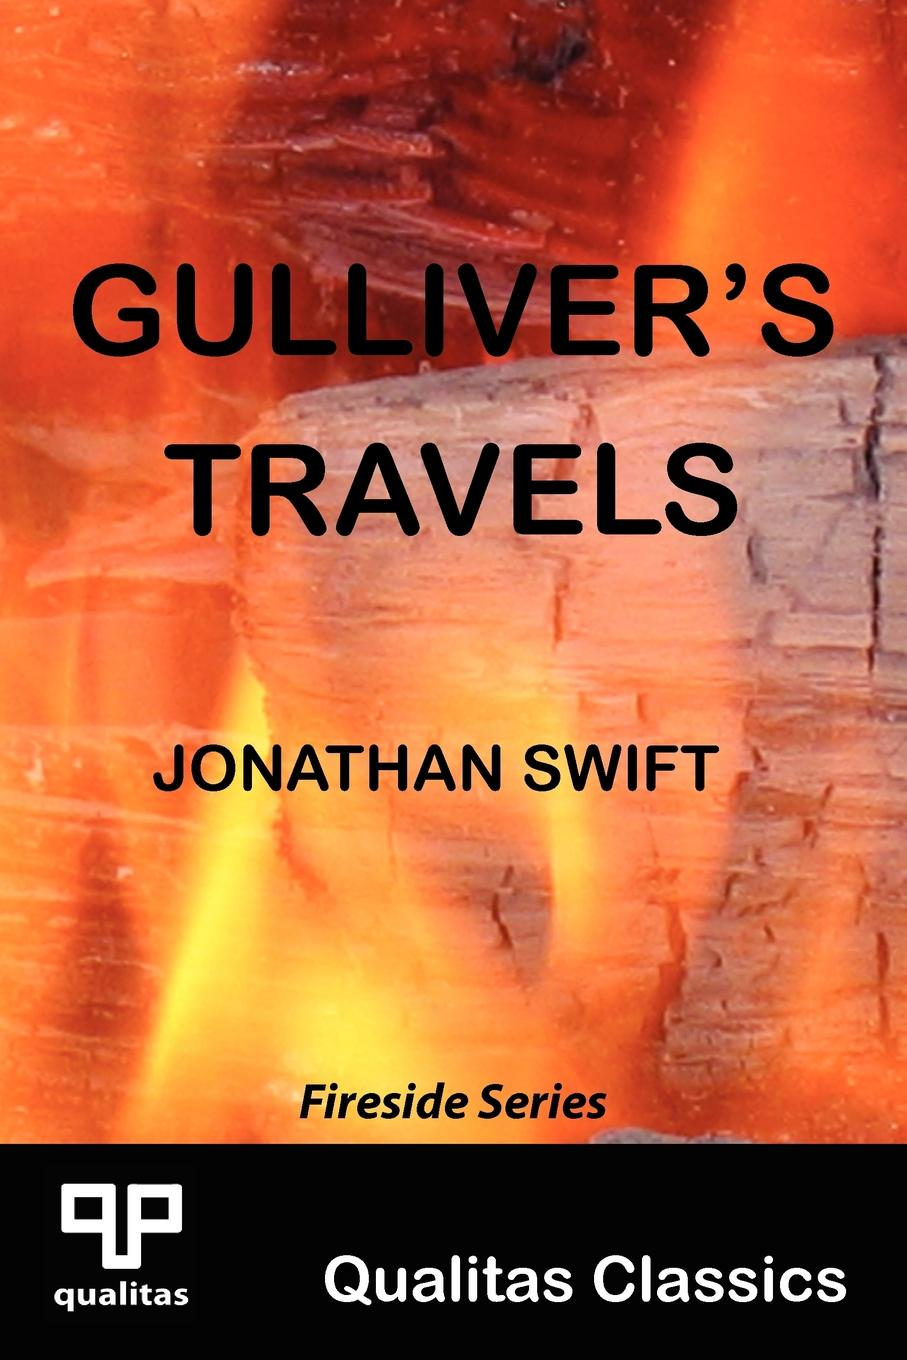 Gulliver.s Travels (Qualitas Classics) Gulliver's Travels was written by Jonathan Swift and first...